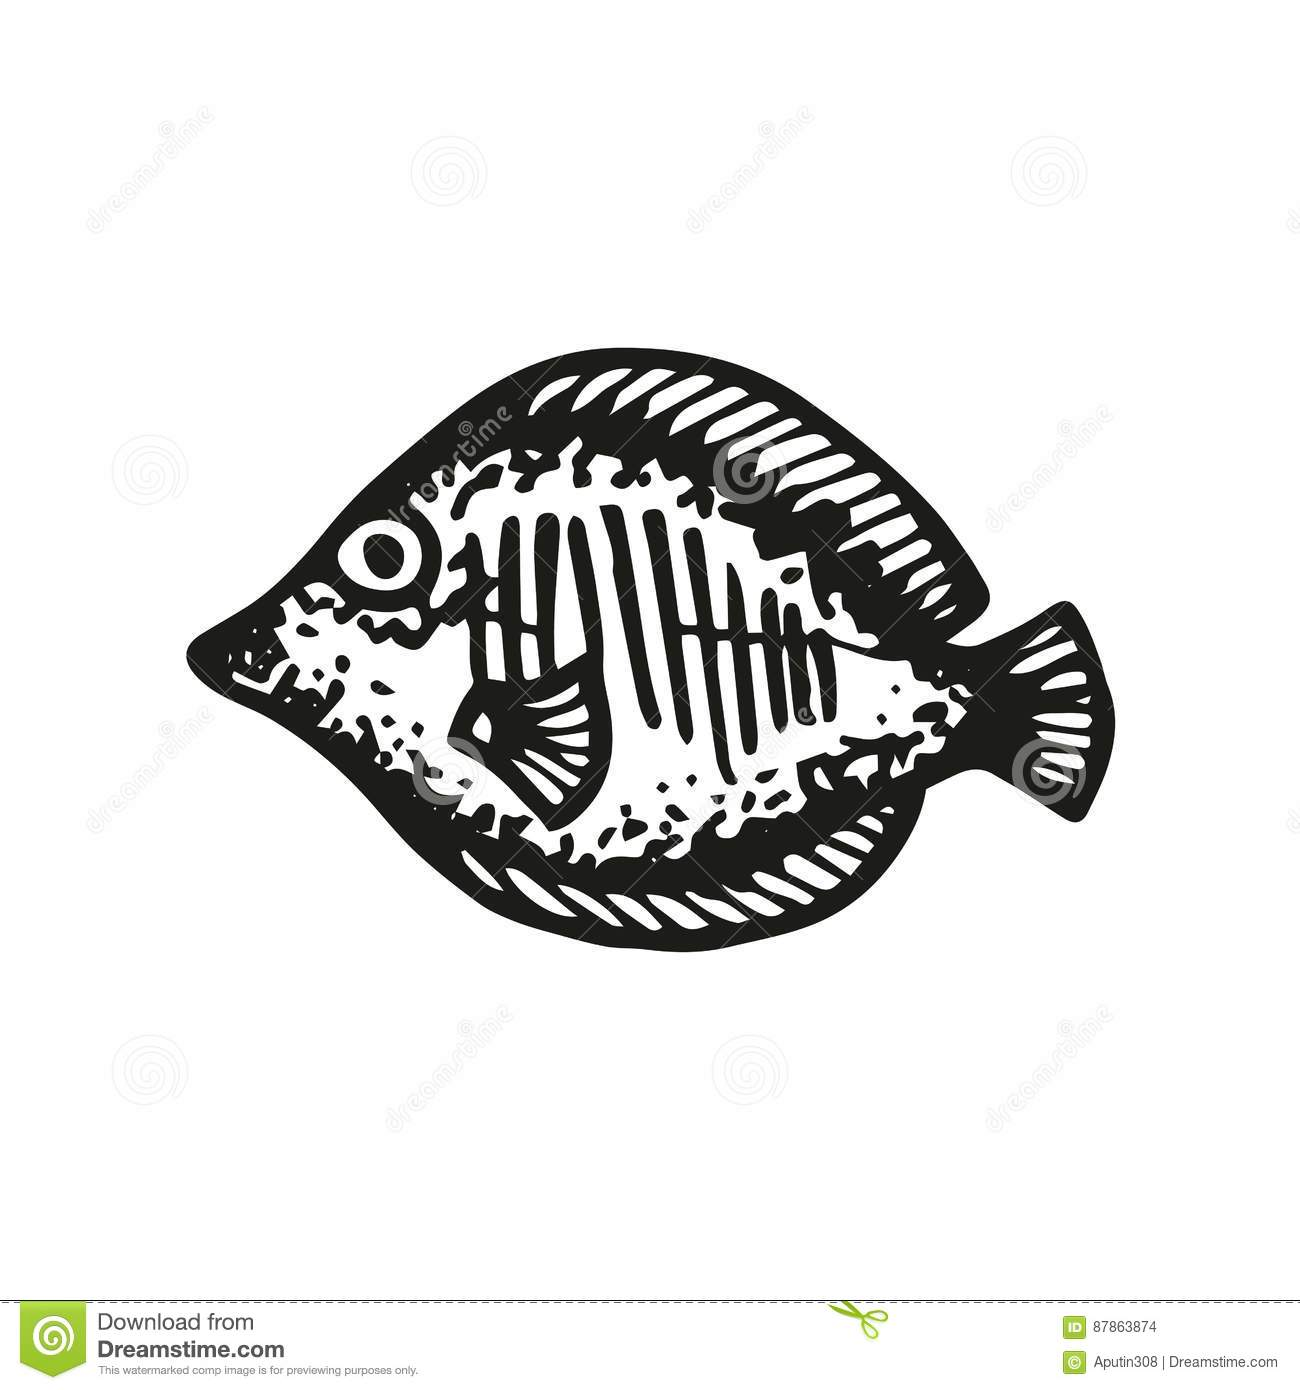 Aquarium Fish Vector Sketch Stock Vector Illustration Of Isolated